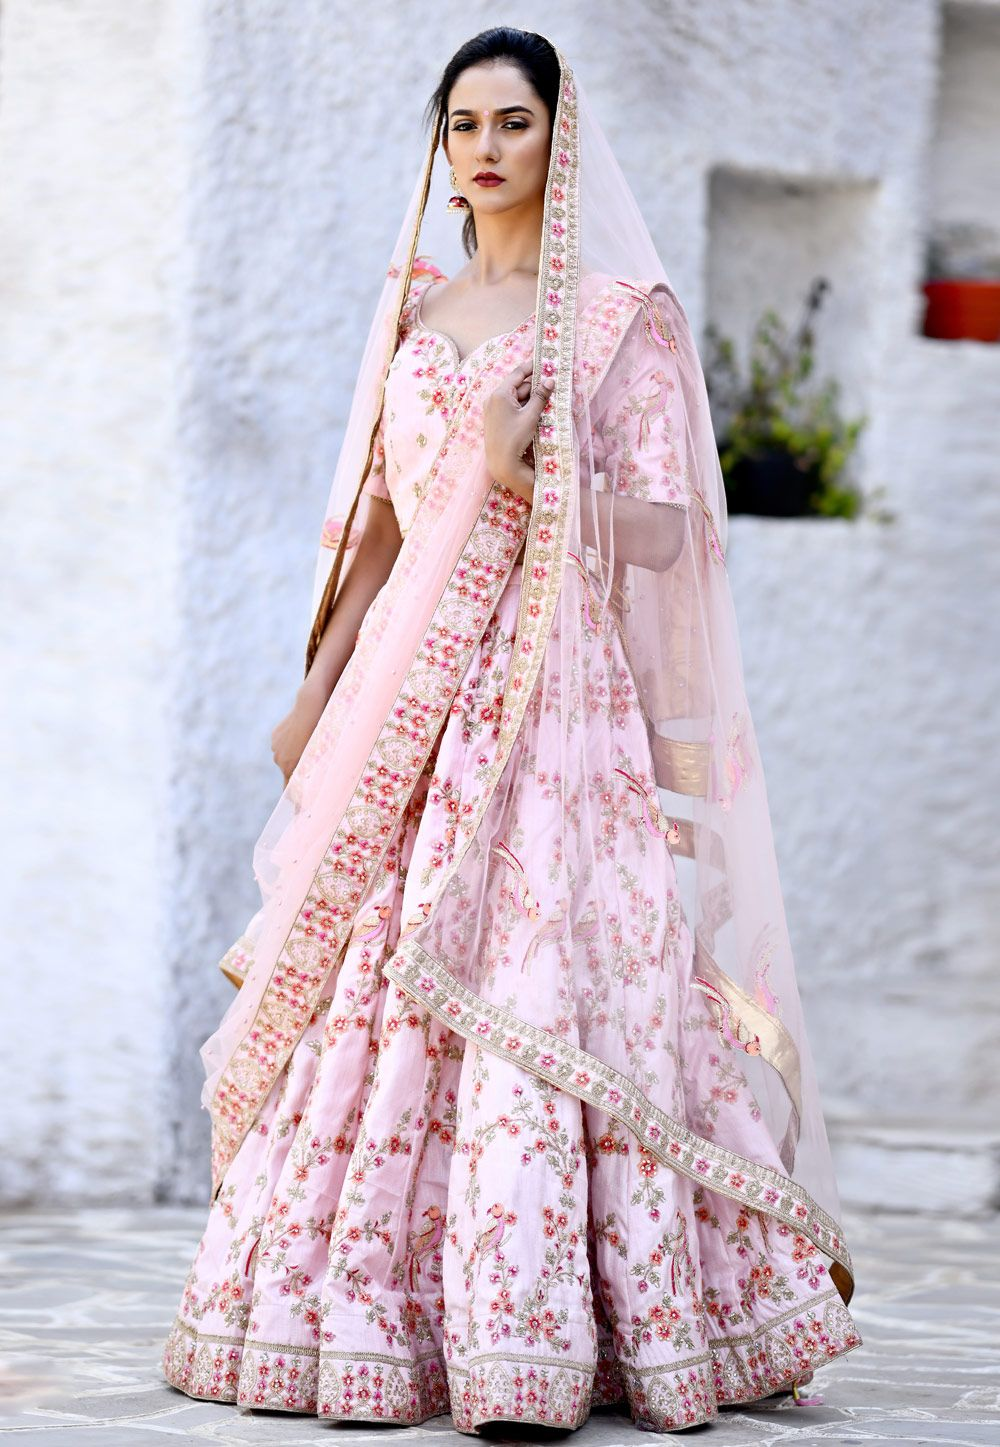 bf9890565e Buy Light Pink Silk Circular Lehenga Choli 160682 online at best price from  vast collection of Lehenga Choli and Chaniya Choli at Indianclothstore.com.